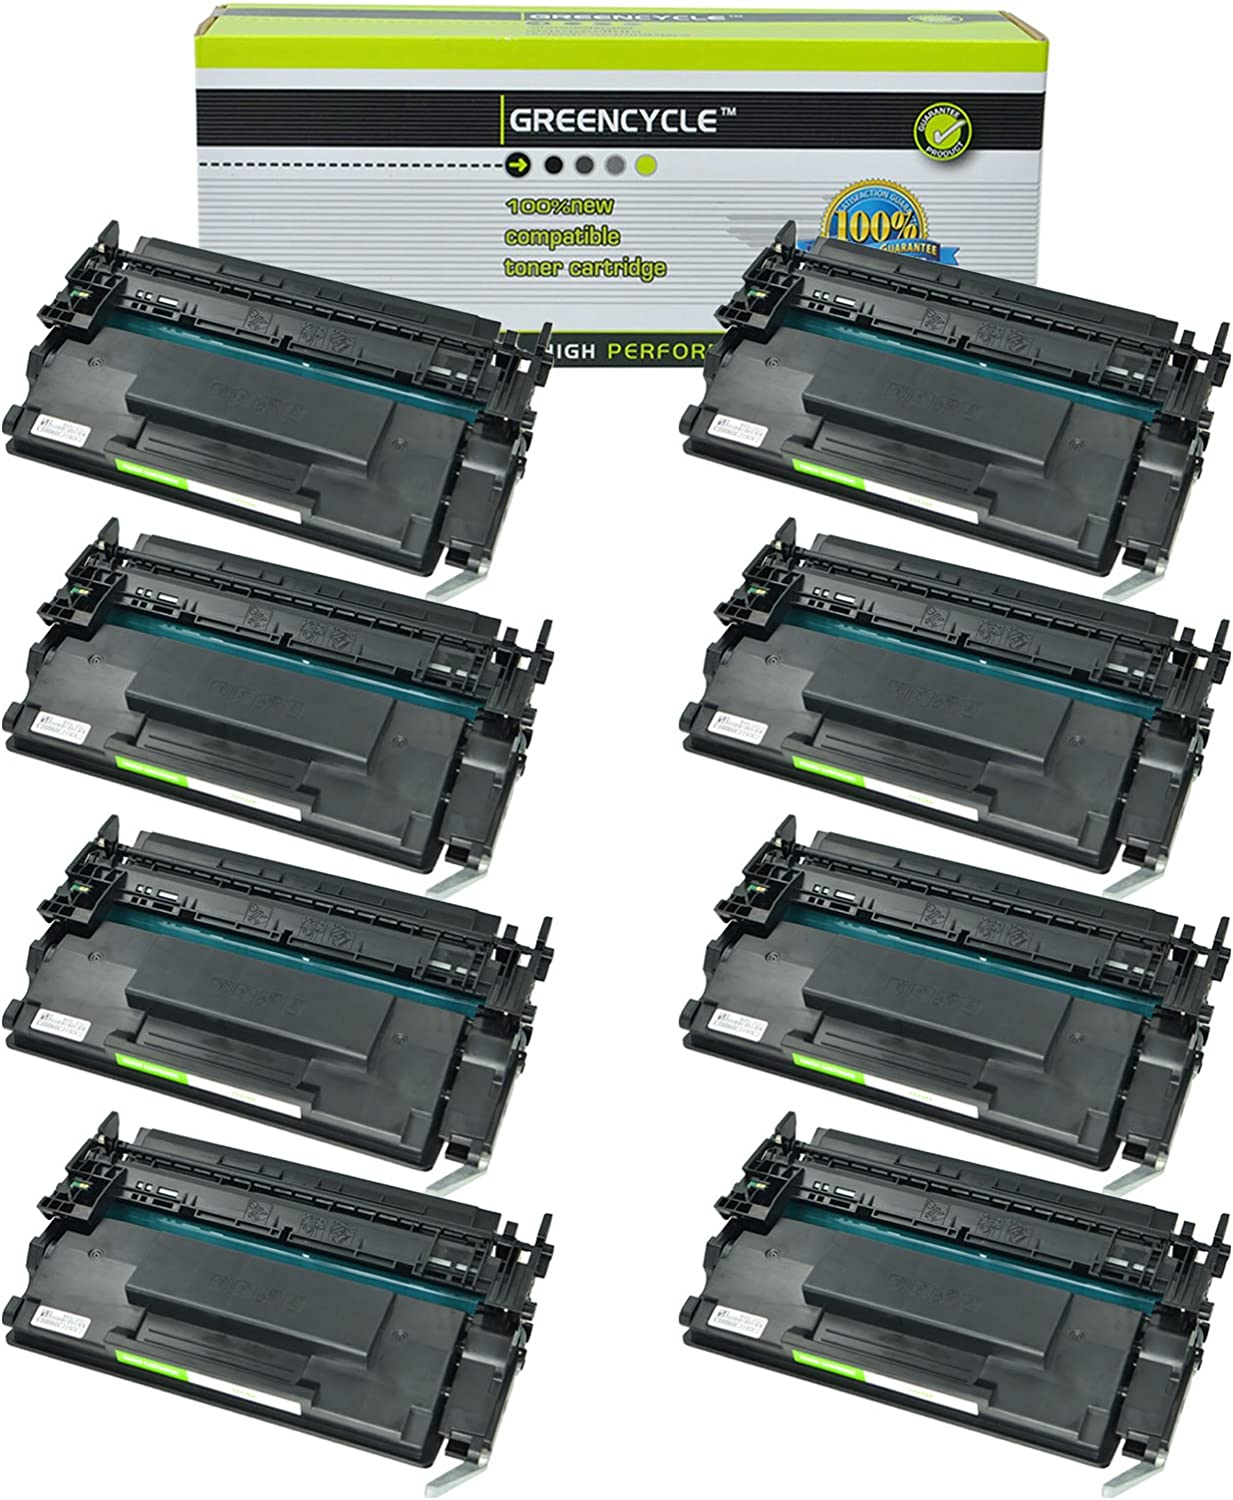 GREENCYCLE 8 Packs Compatible for HP 26X CF226X Black High Yield Toner Cartridge for Laserjet Pro M402 M426 Laserjet Pro M402dn M402n M402dw MFP M426fdw M426fdn M402d MFP M426dw Printers 9000 Pages